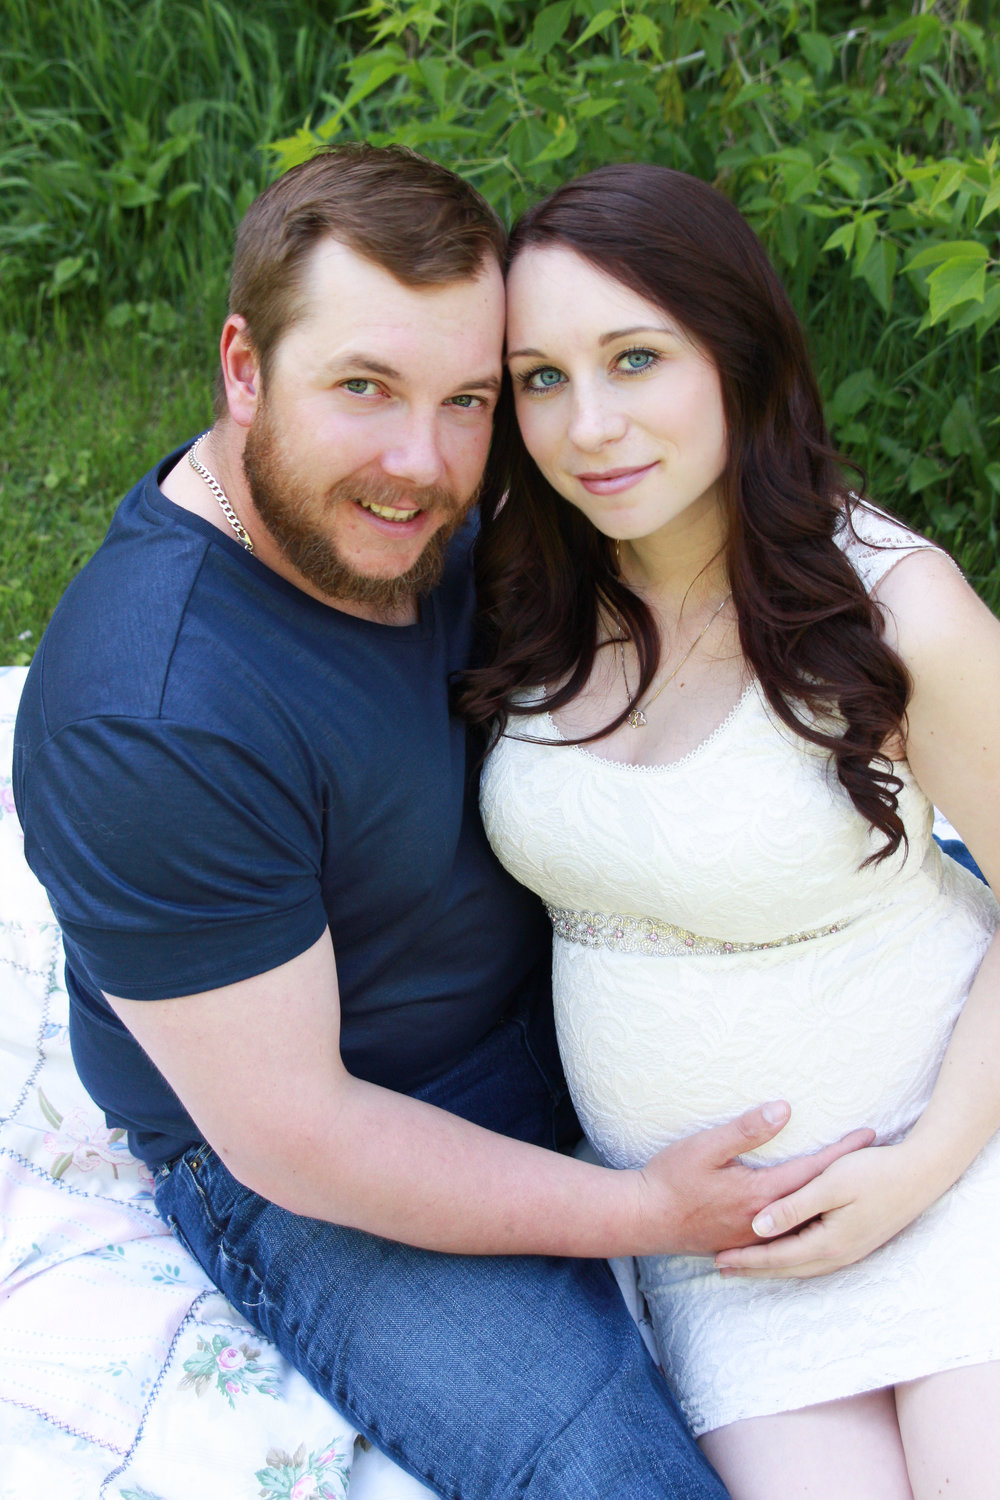 M&P {Expecting!}_WEB-77.jpg